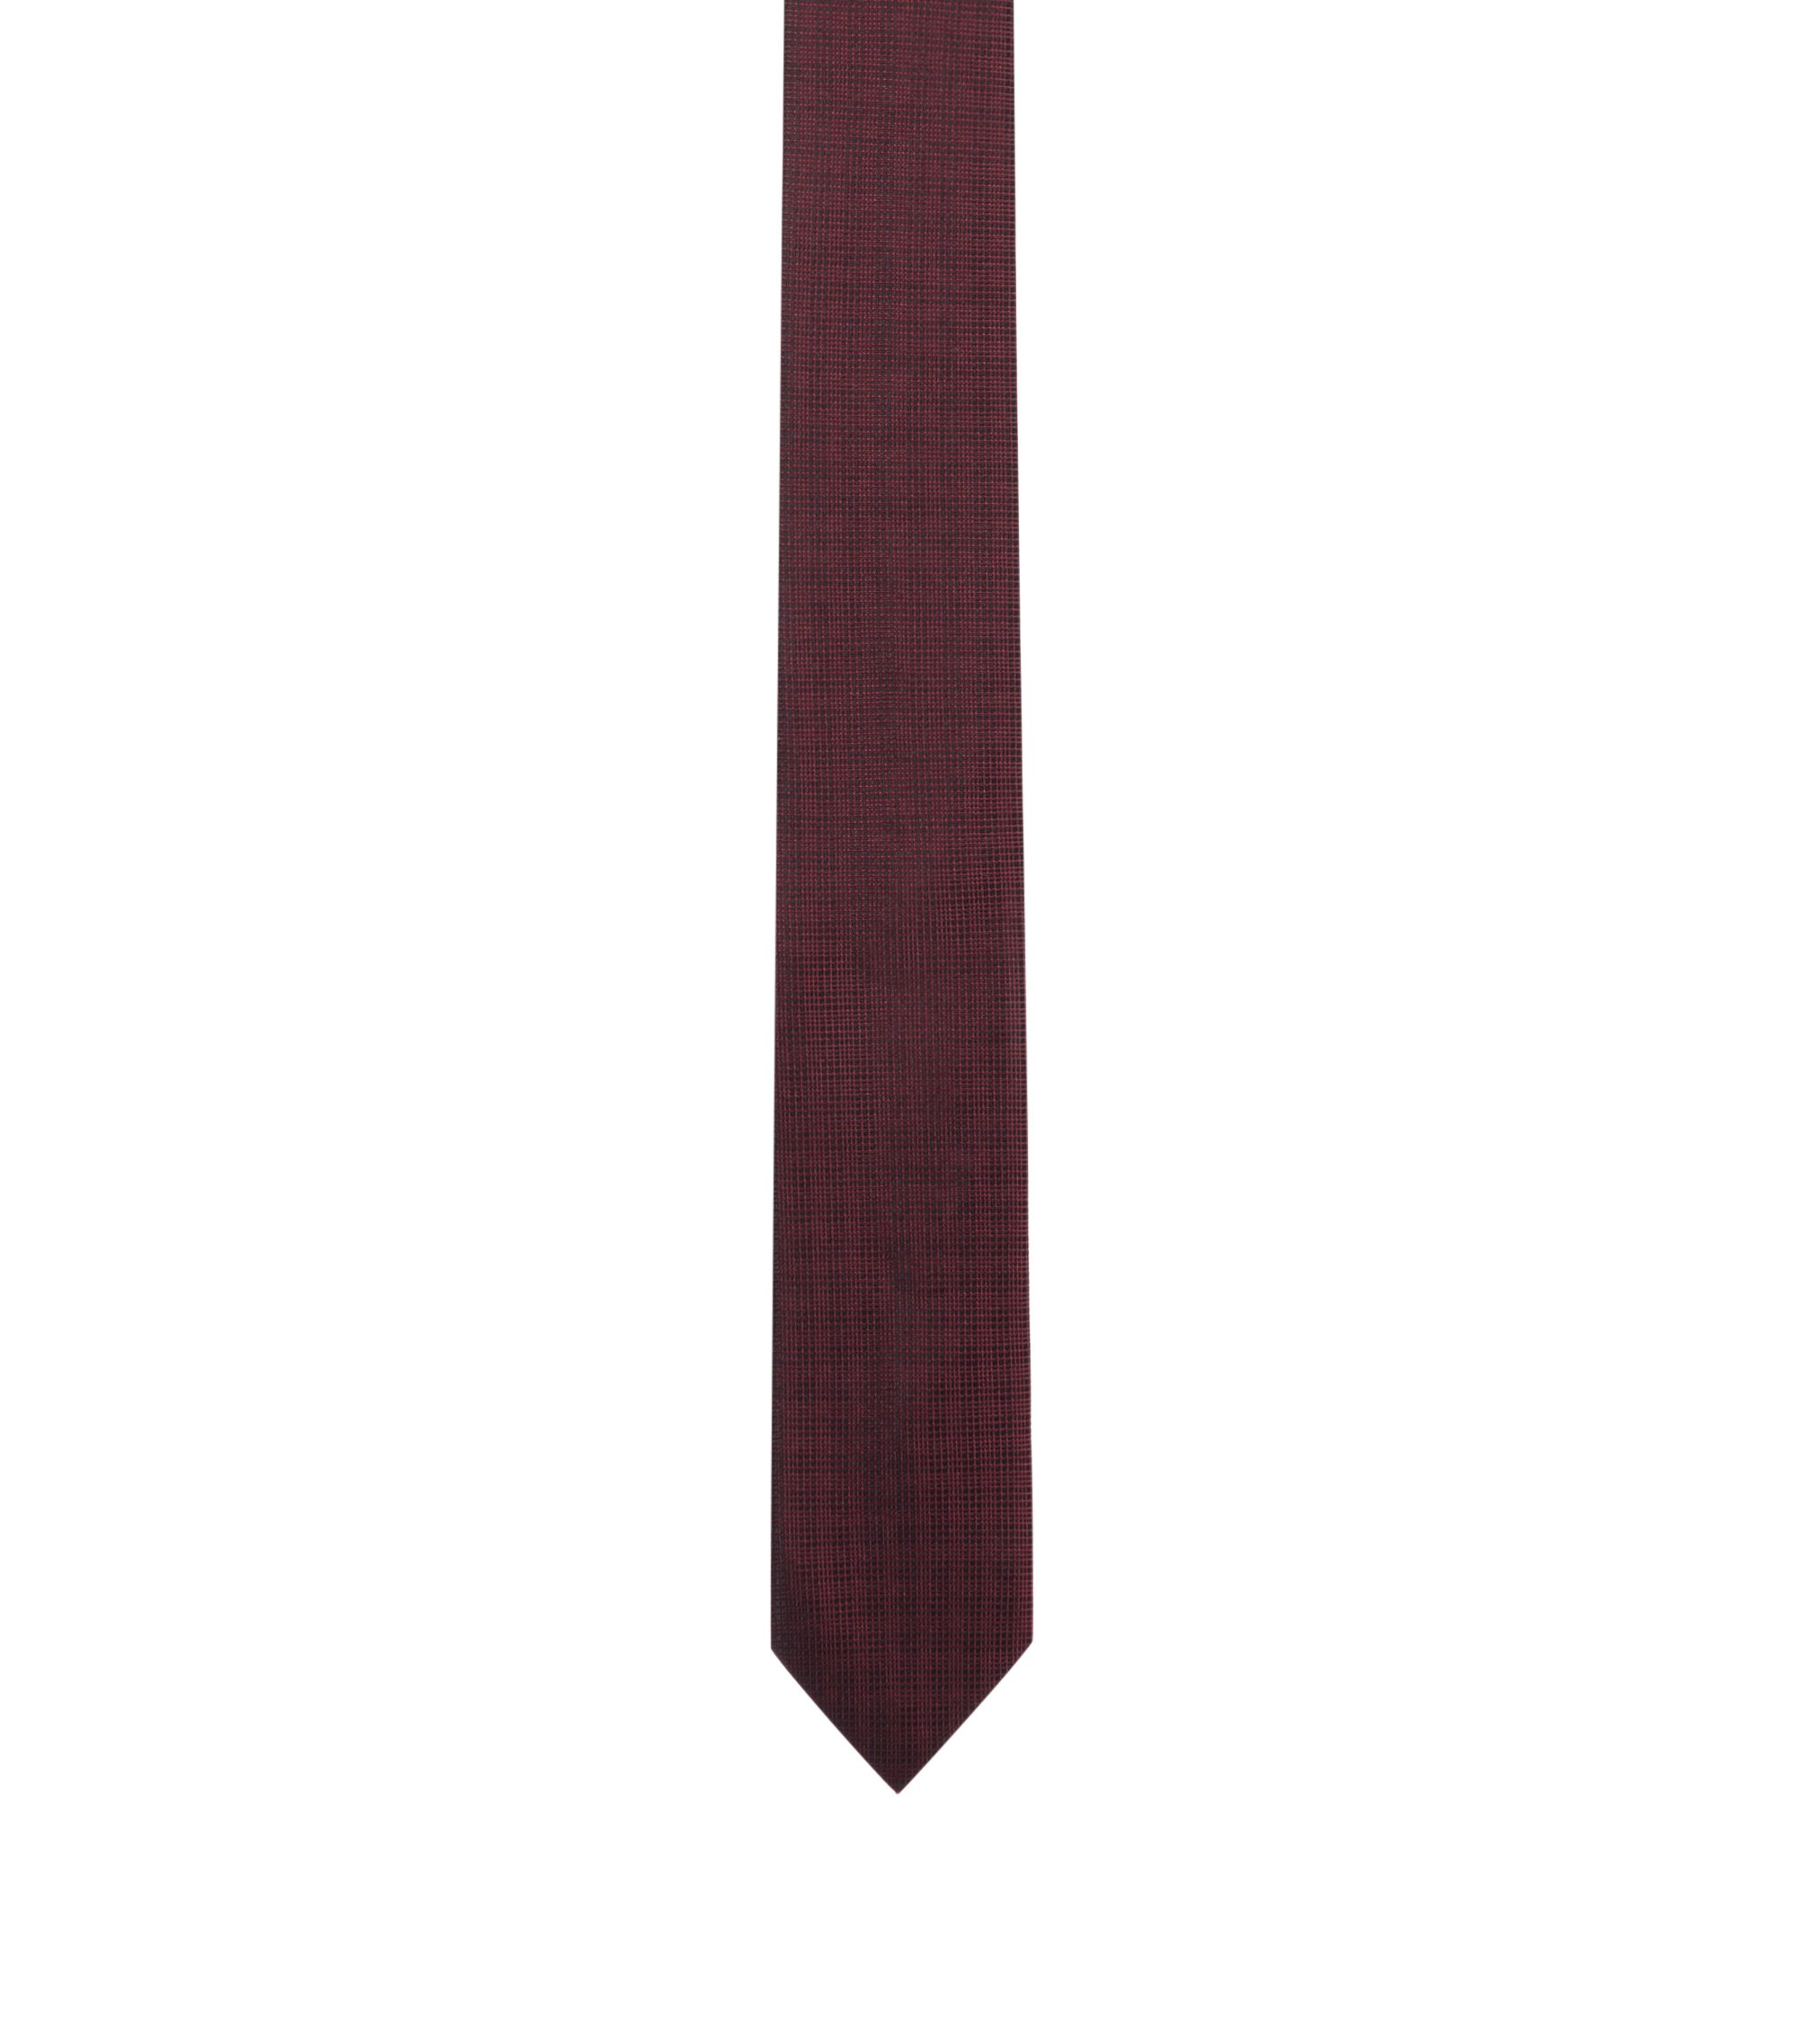 Plaid Italian Silk Slim Tie, Dark Red